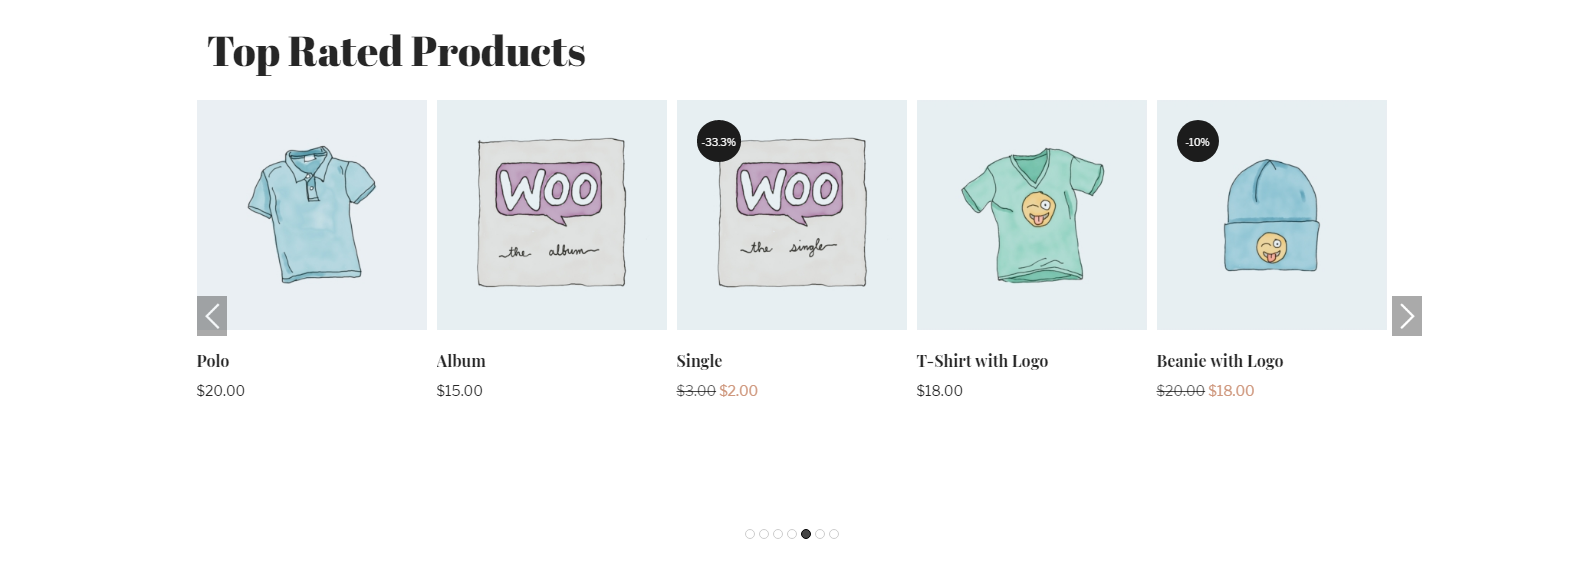 WooCommerce Top Rated Products in carousel view